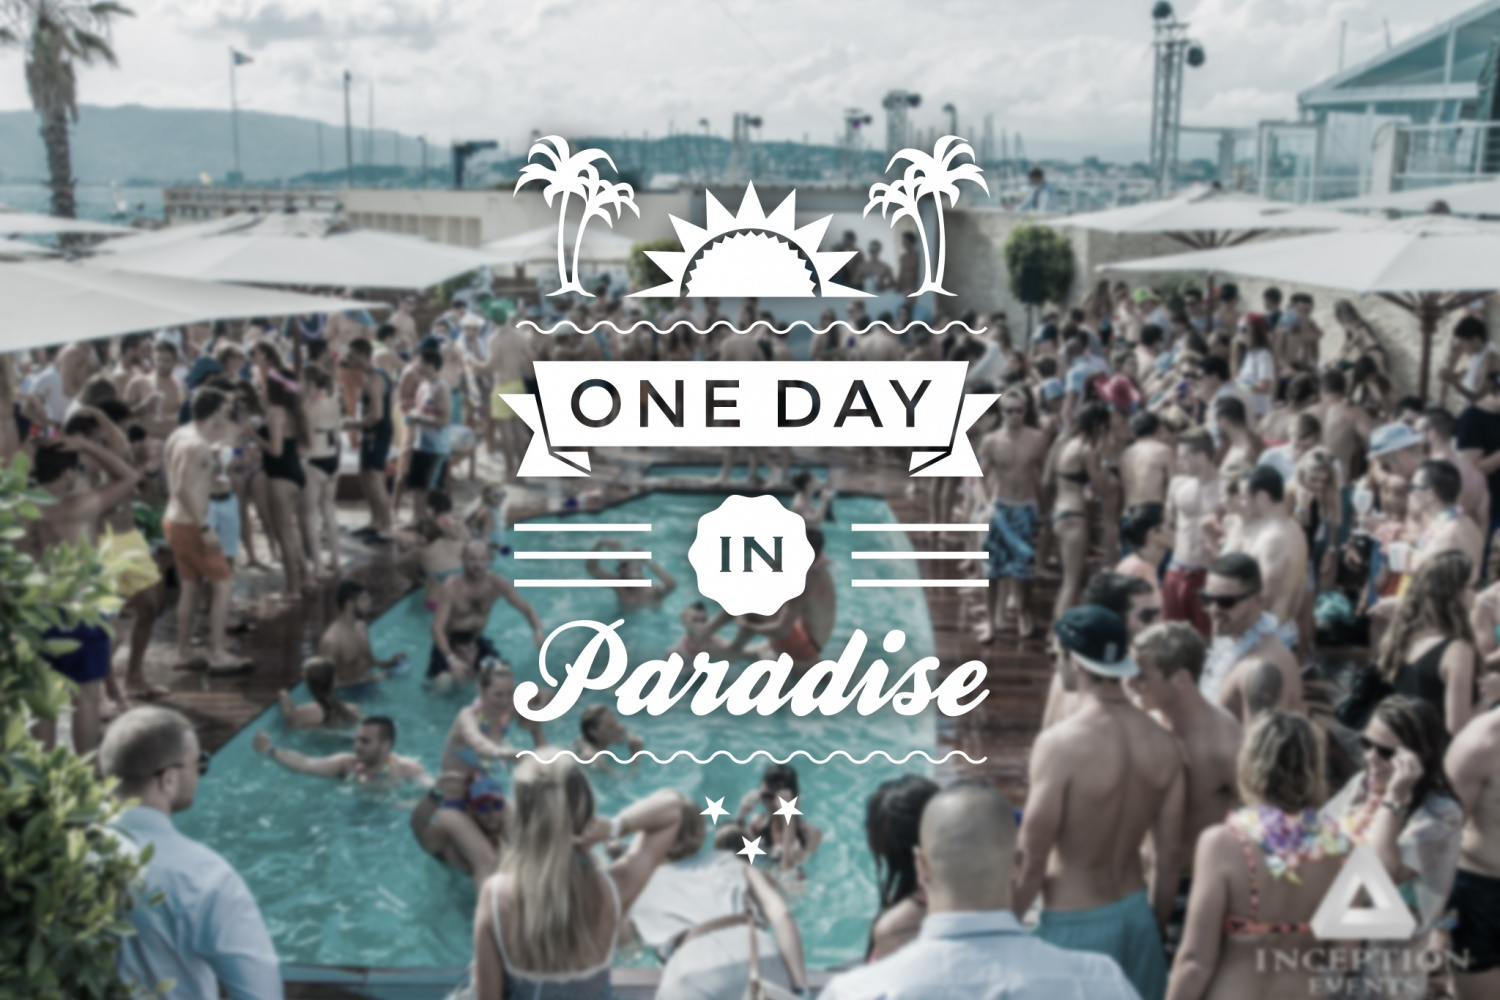 One Day In Paradise